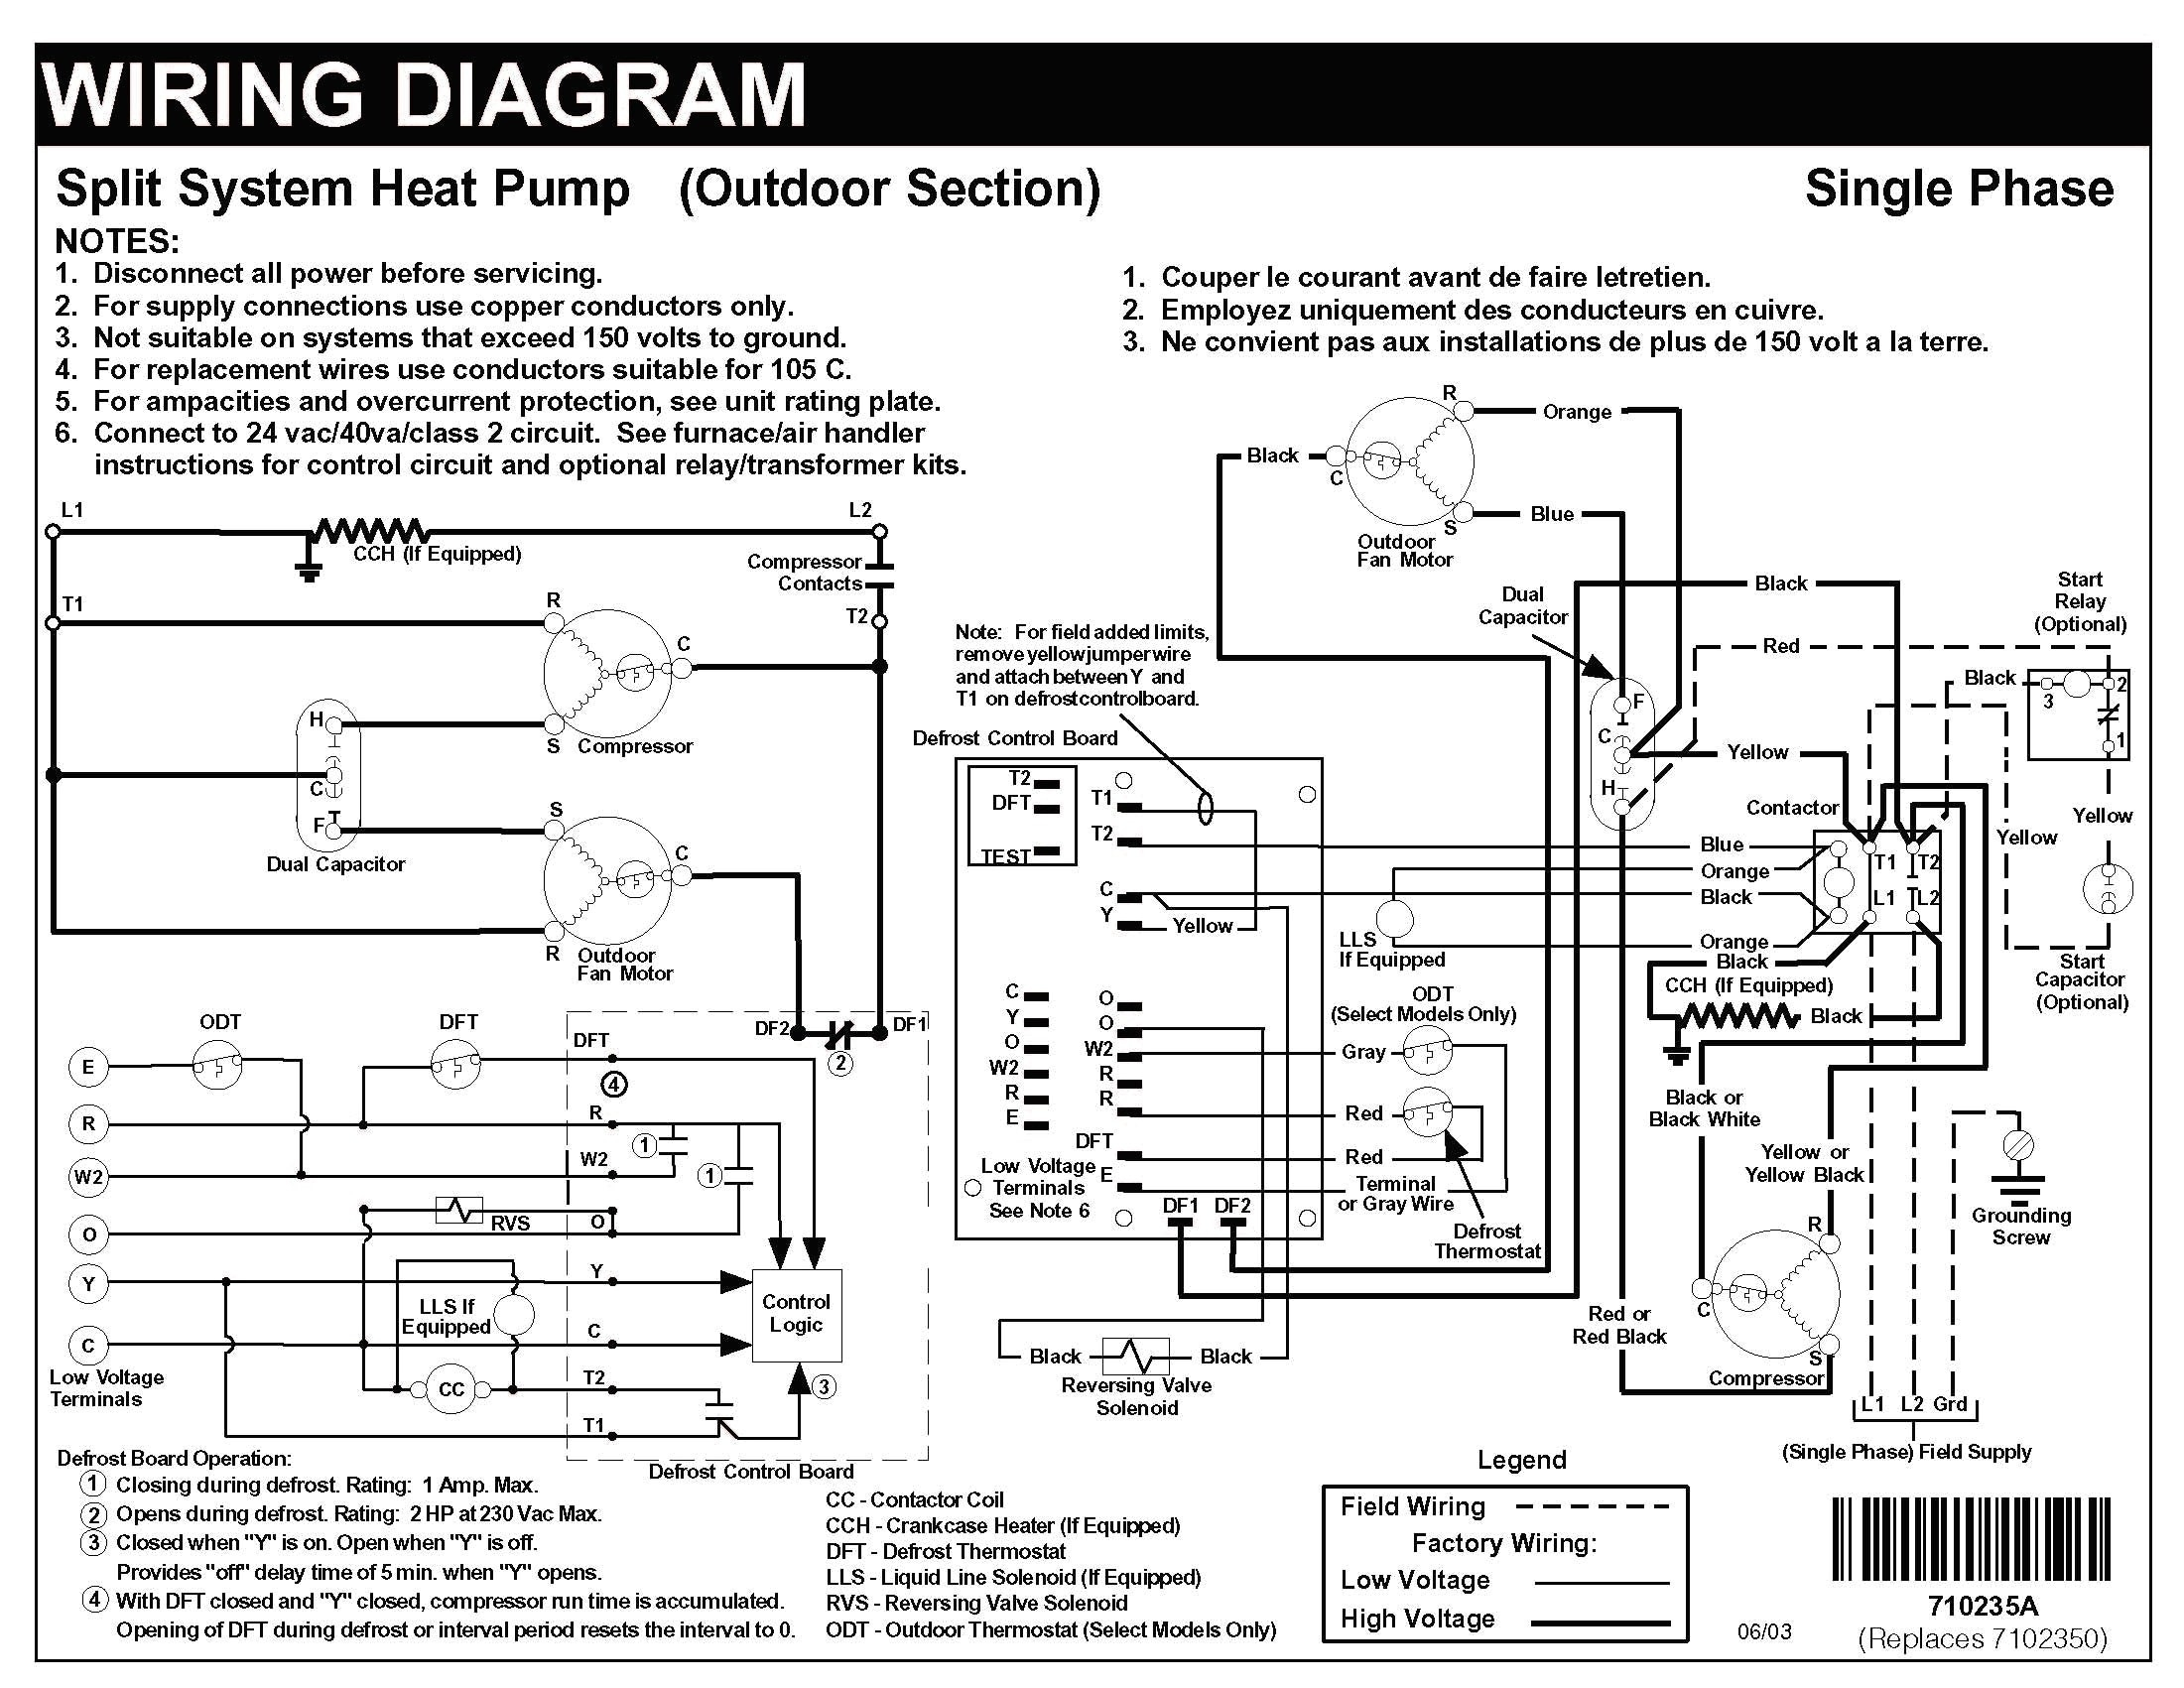 nest e thermostat wiring diagram heat pump leeson dc motor carrier free